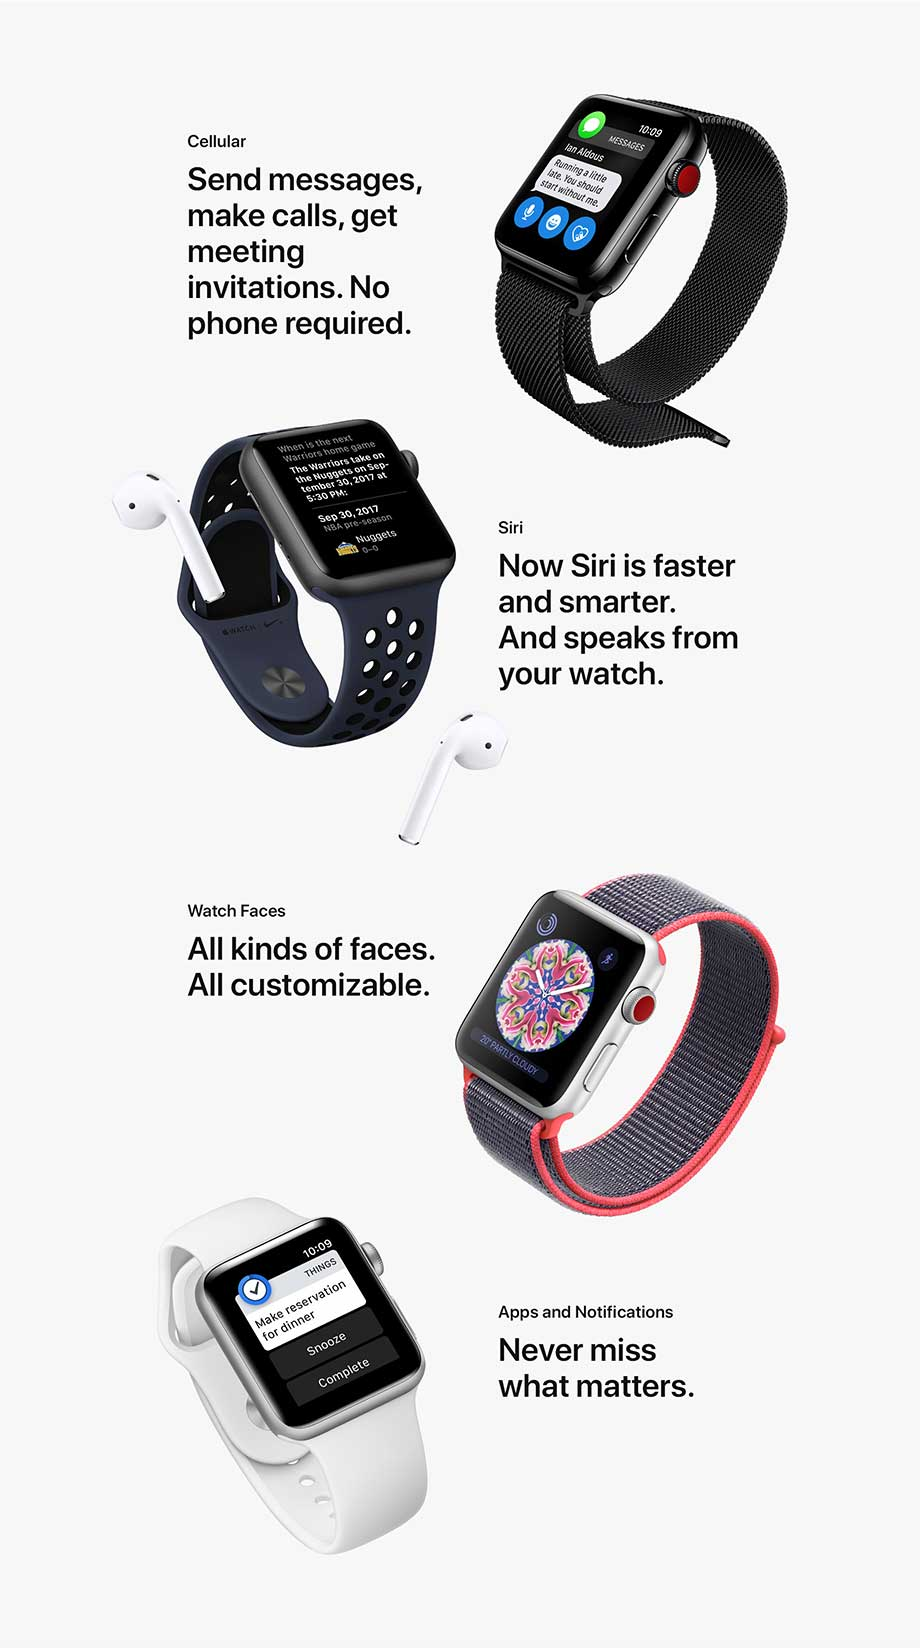 Cellular, Siri, Watch Faces, Apps and Notifications